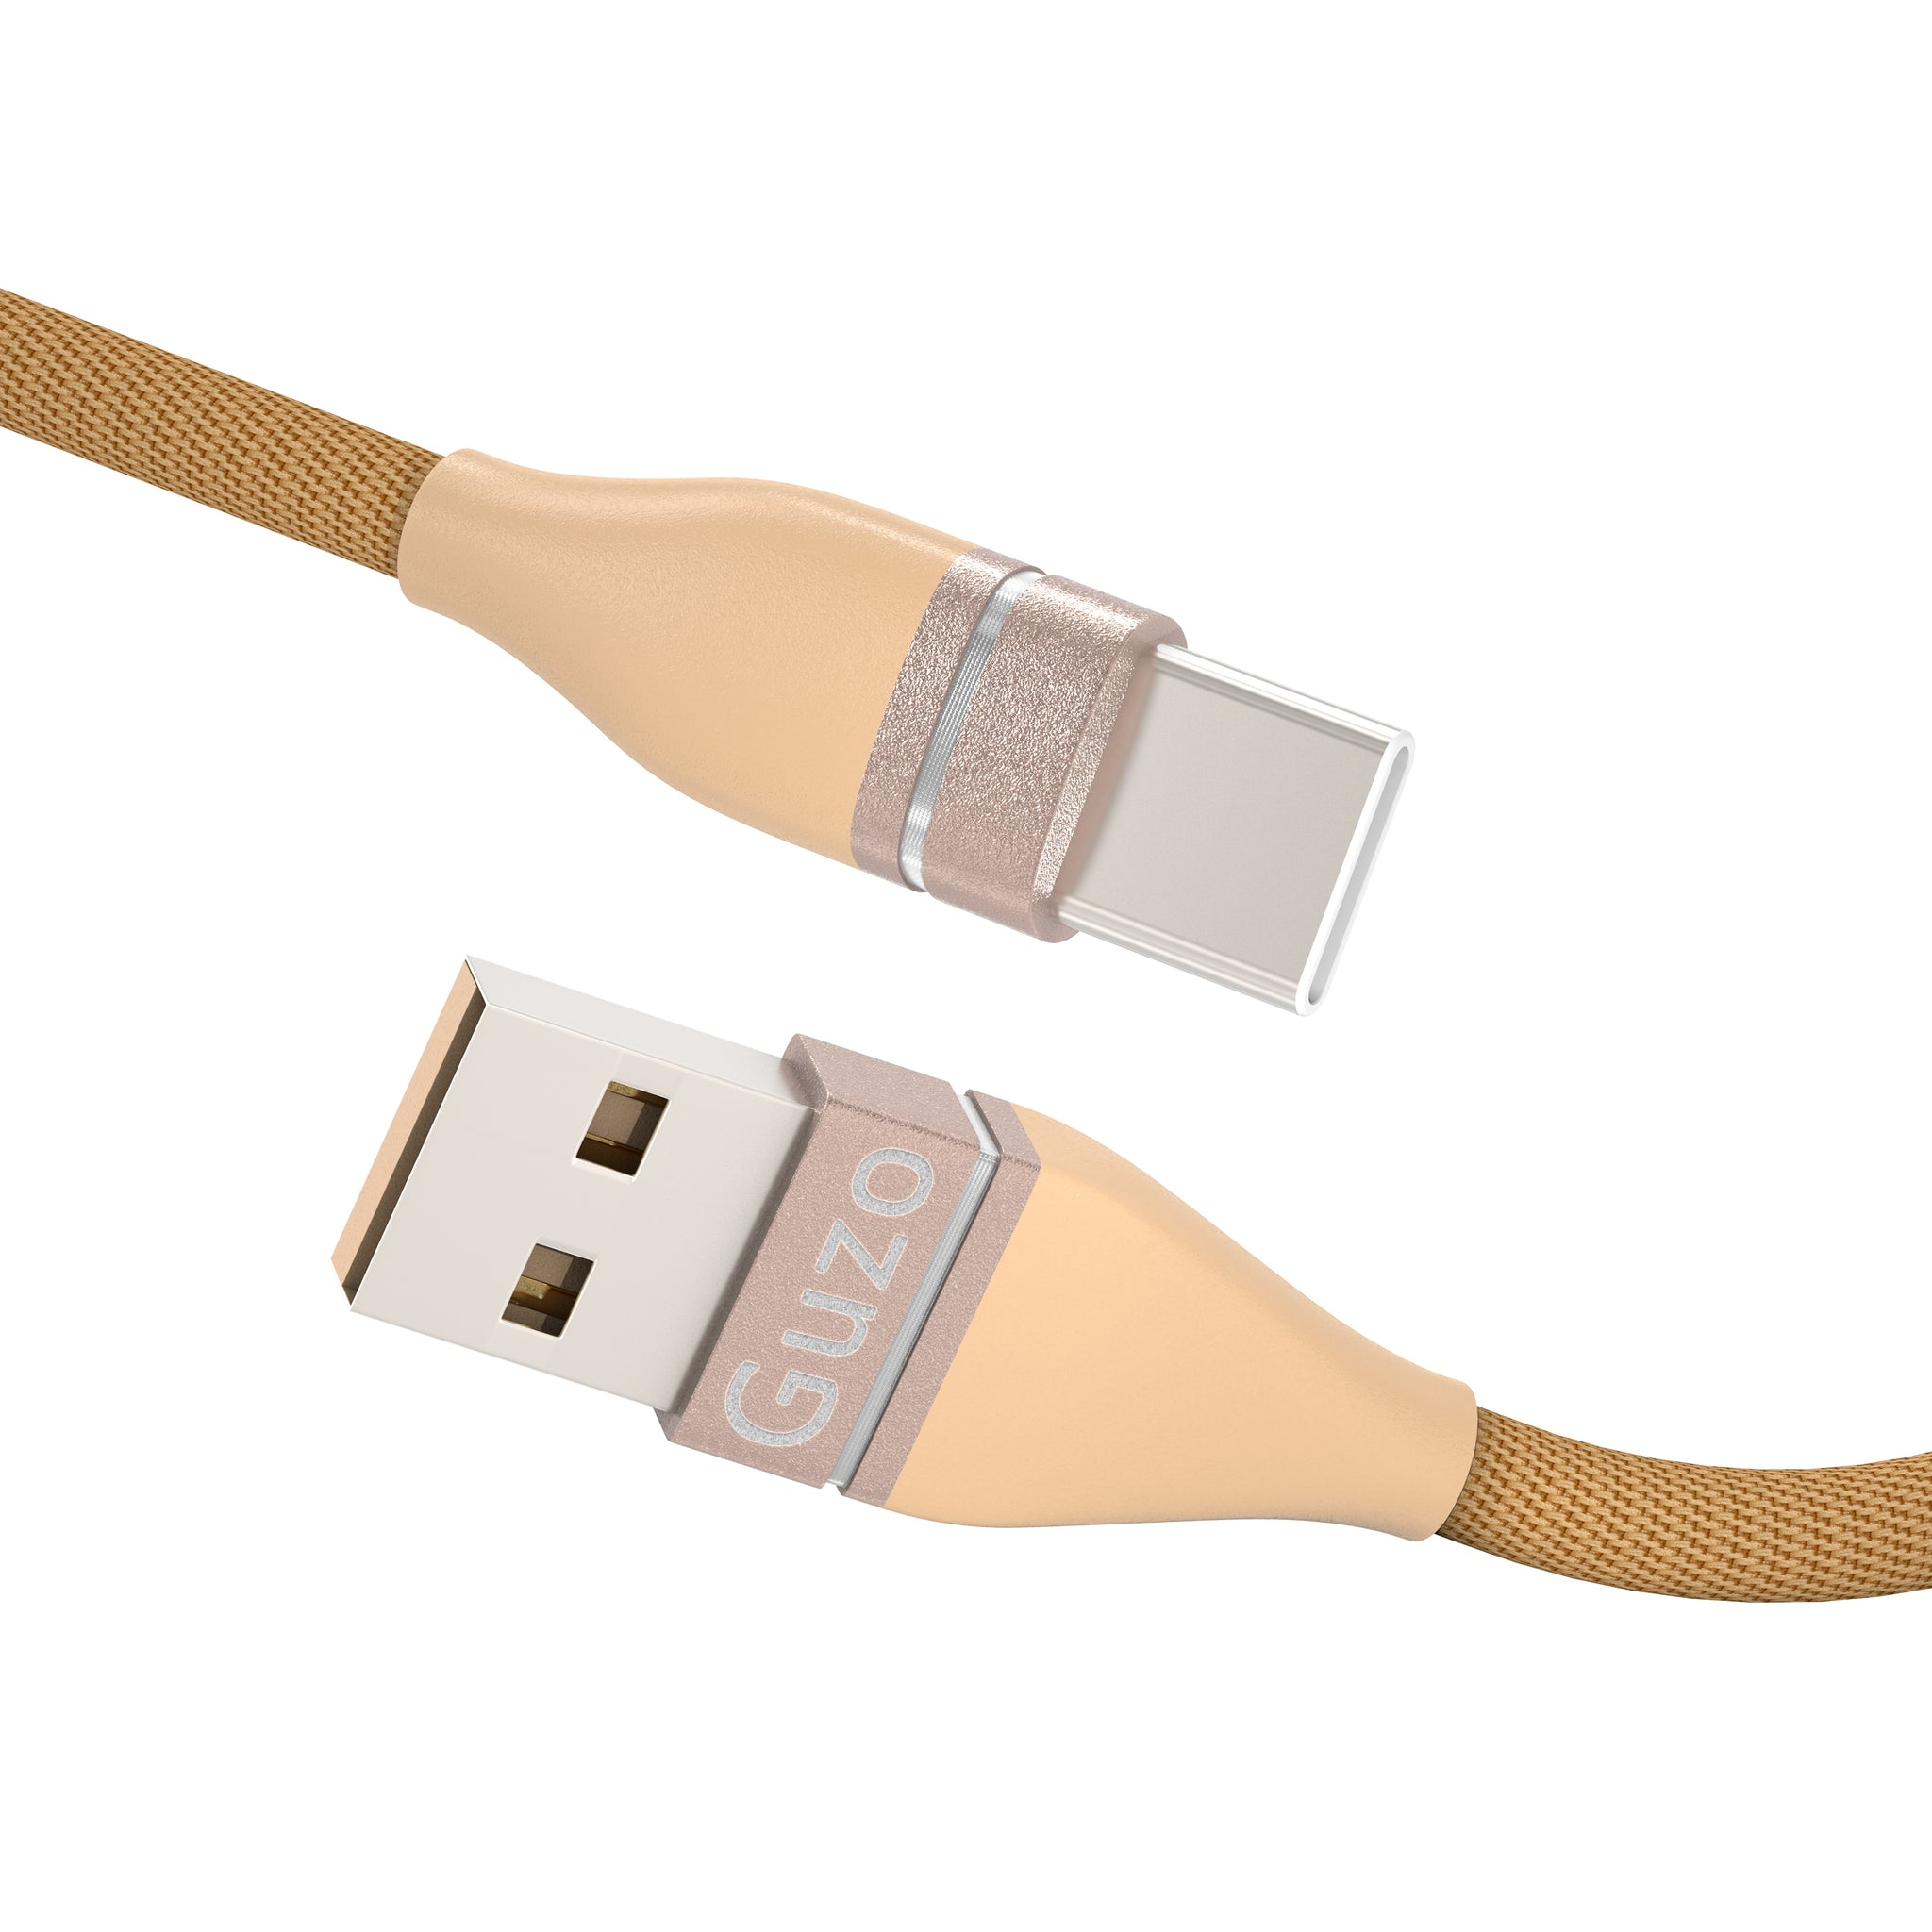 USB Type C Cable 3A Fast Charging, Guzo(2-Pack 3.3ft) USB A to USB C Charge Nylon Braided Compatible with Samsung Galaxy S10 S10E S9 S8 S20 Plus,Note 10 9 8,Z Flip, and Other USB C Charger Pink